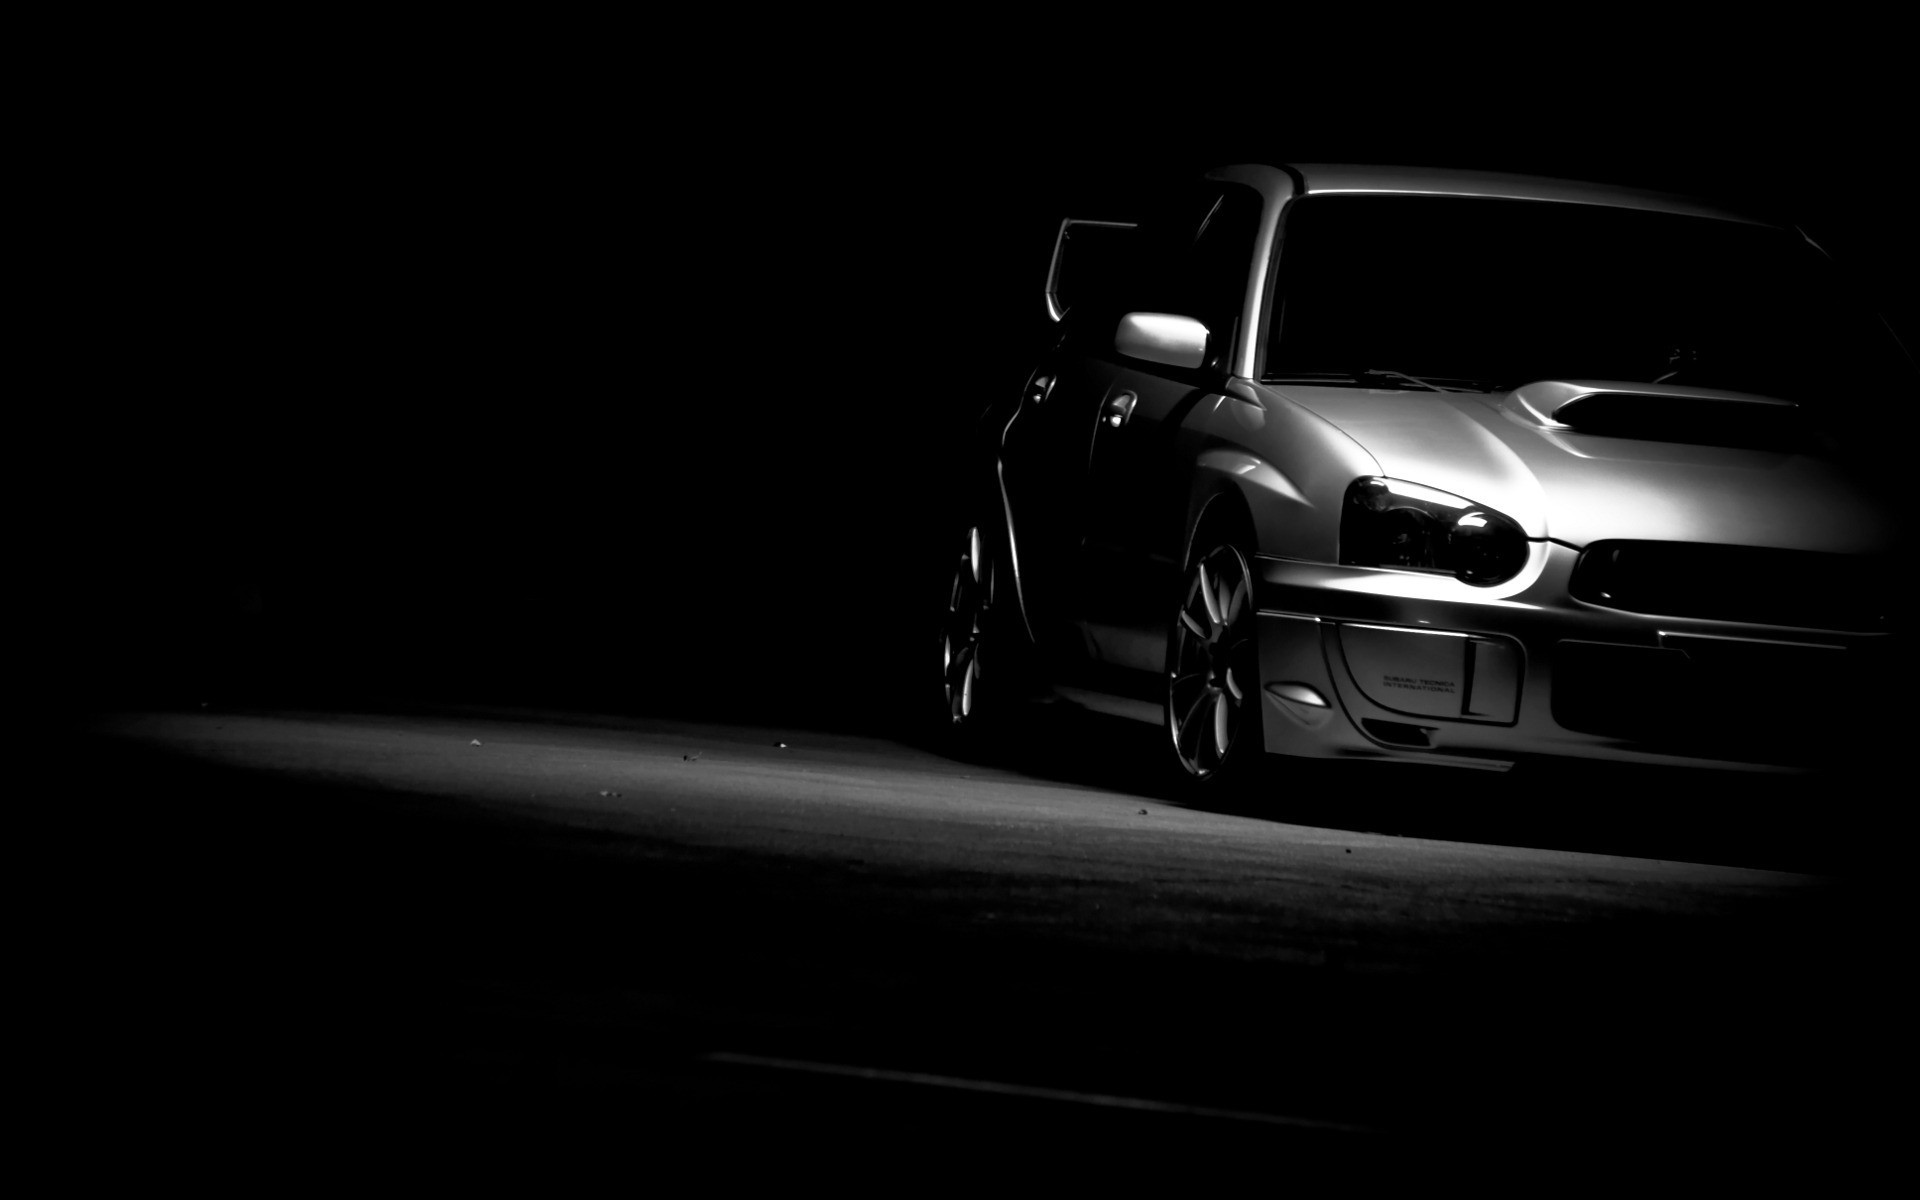 cool impreza wrx wallpaper 25174